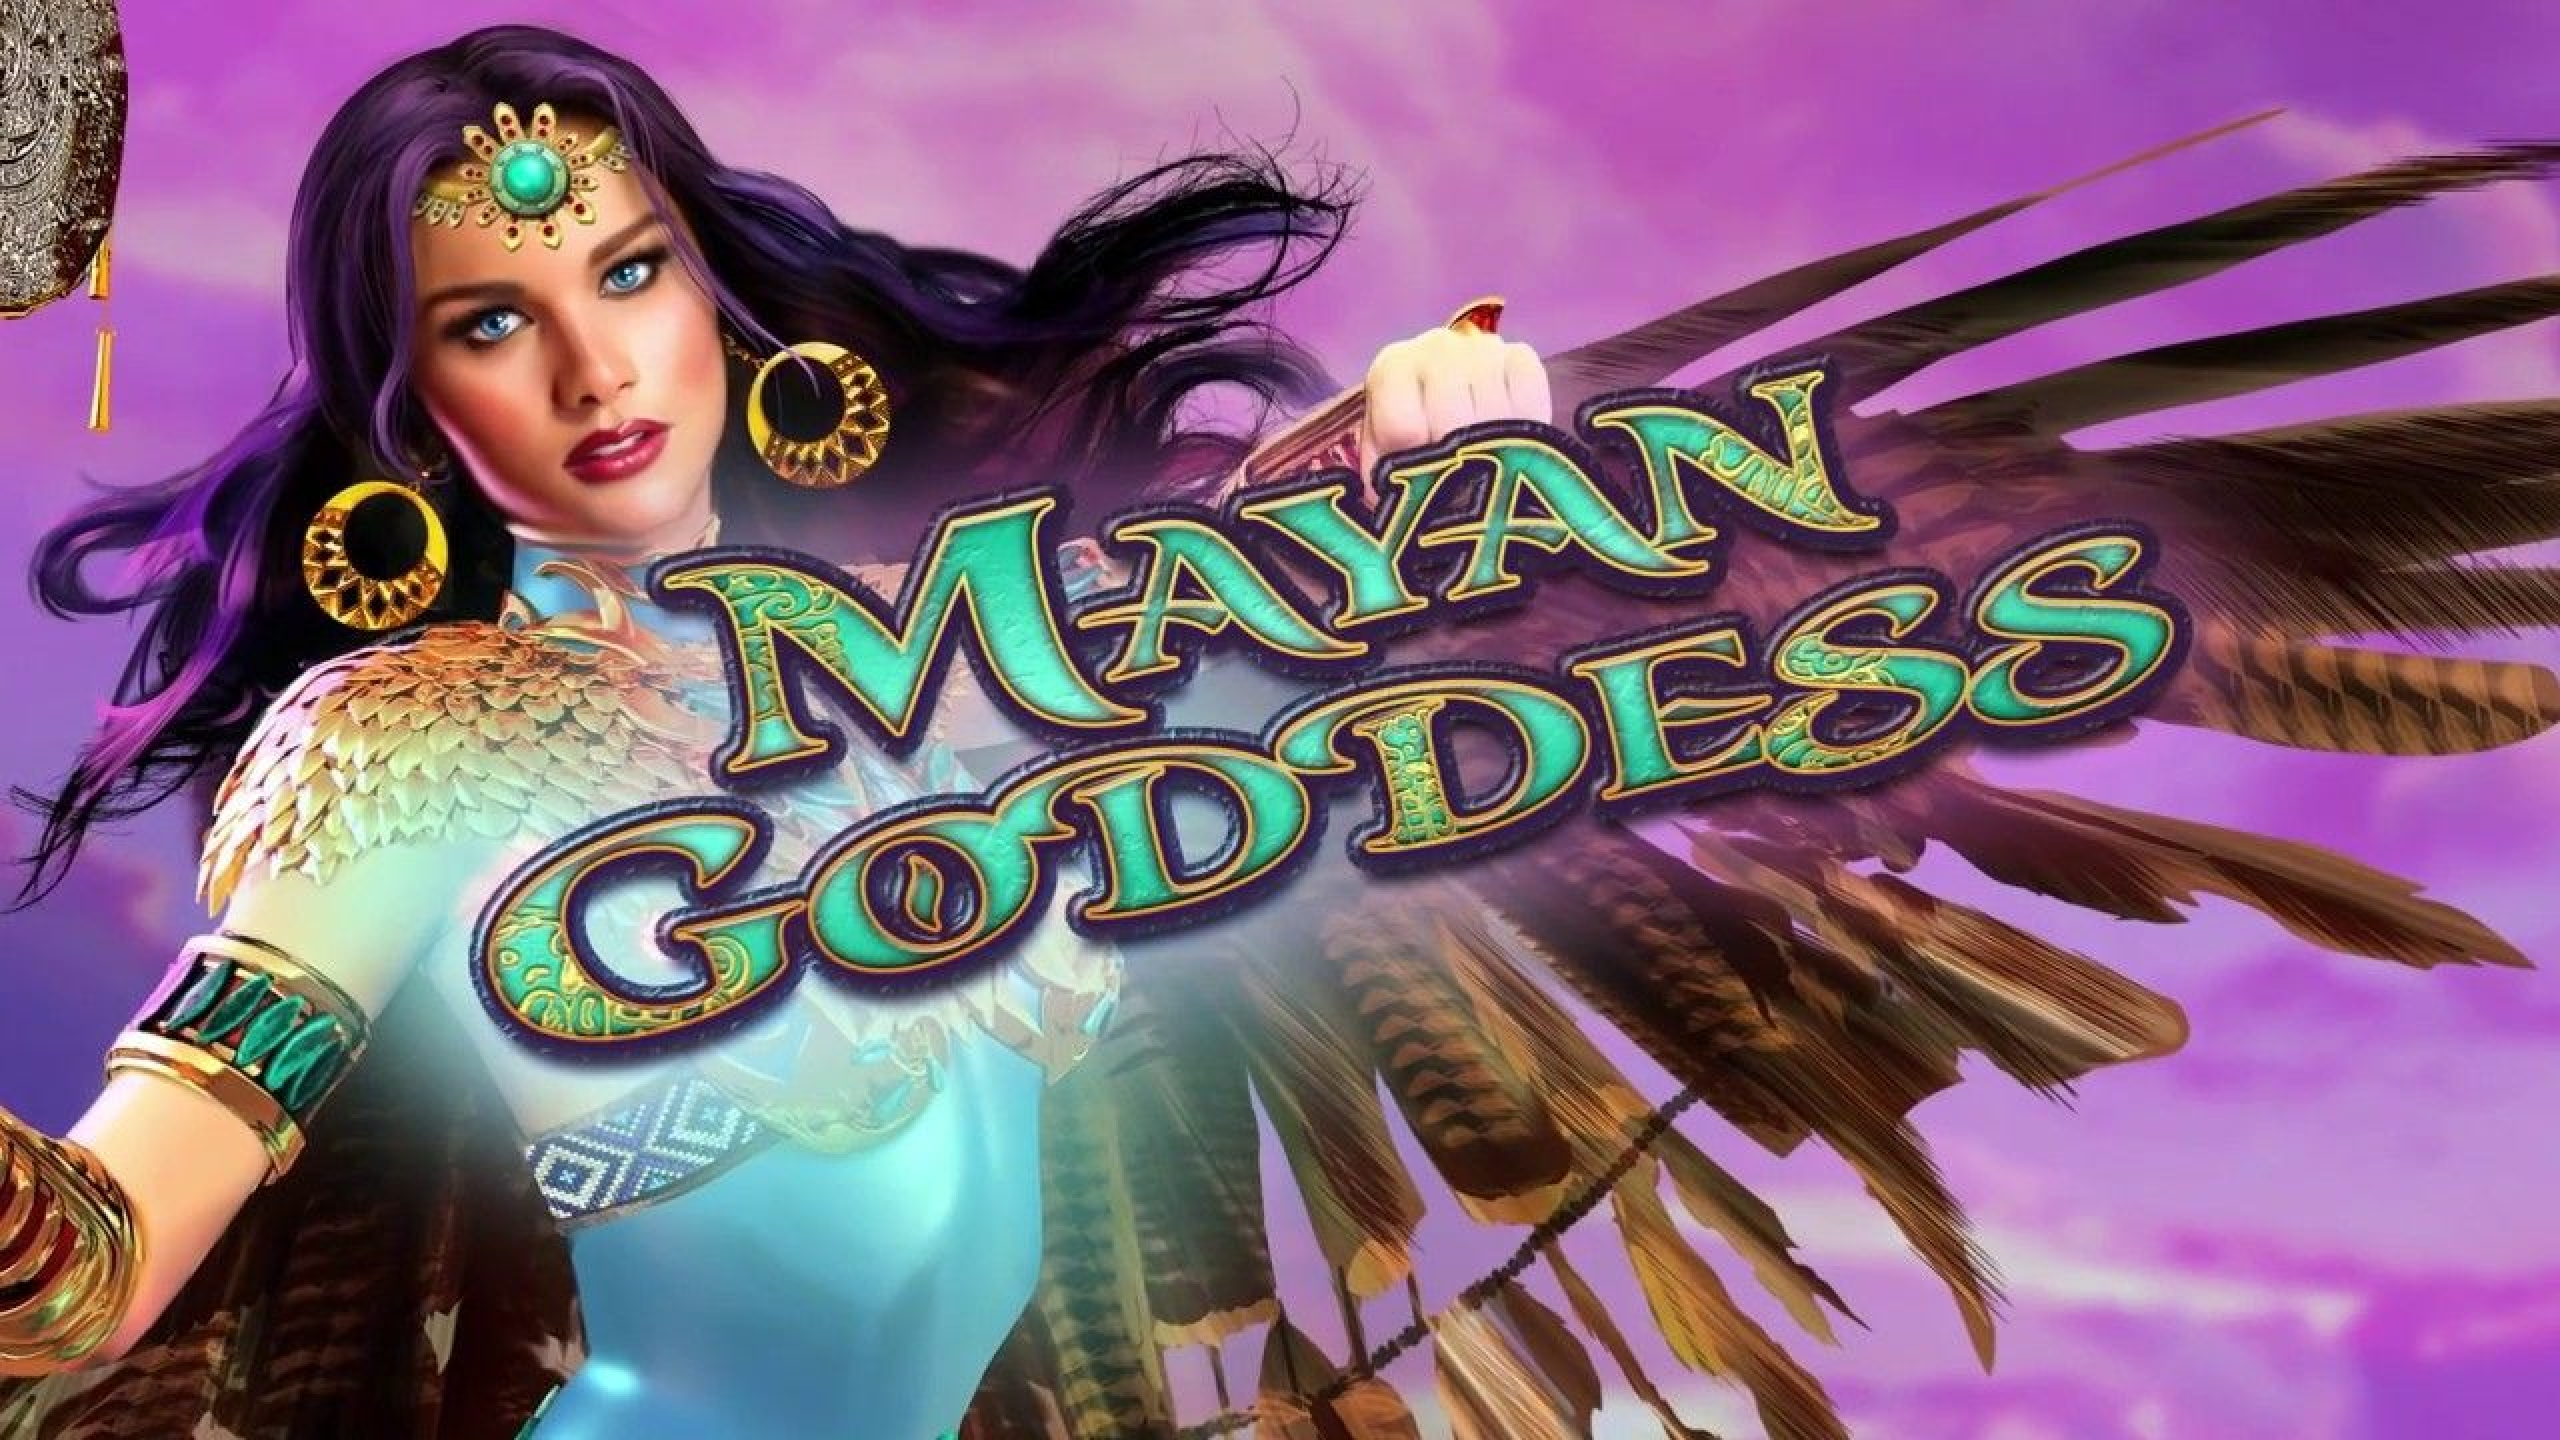 The Mayan Goddess Online Slot Demo Game by High 5 Games